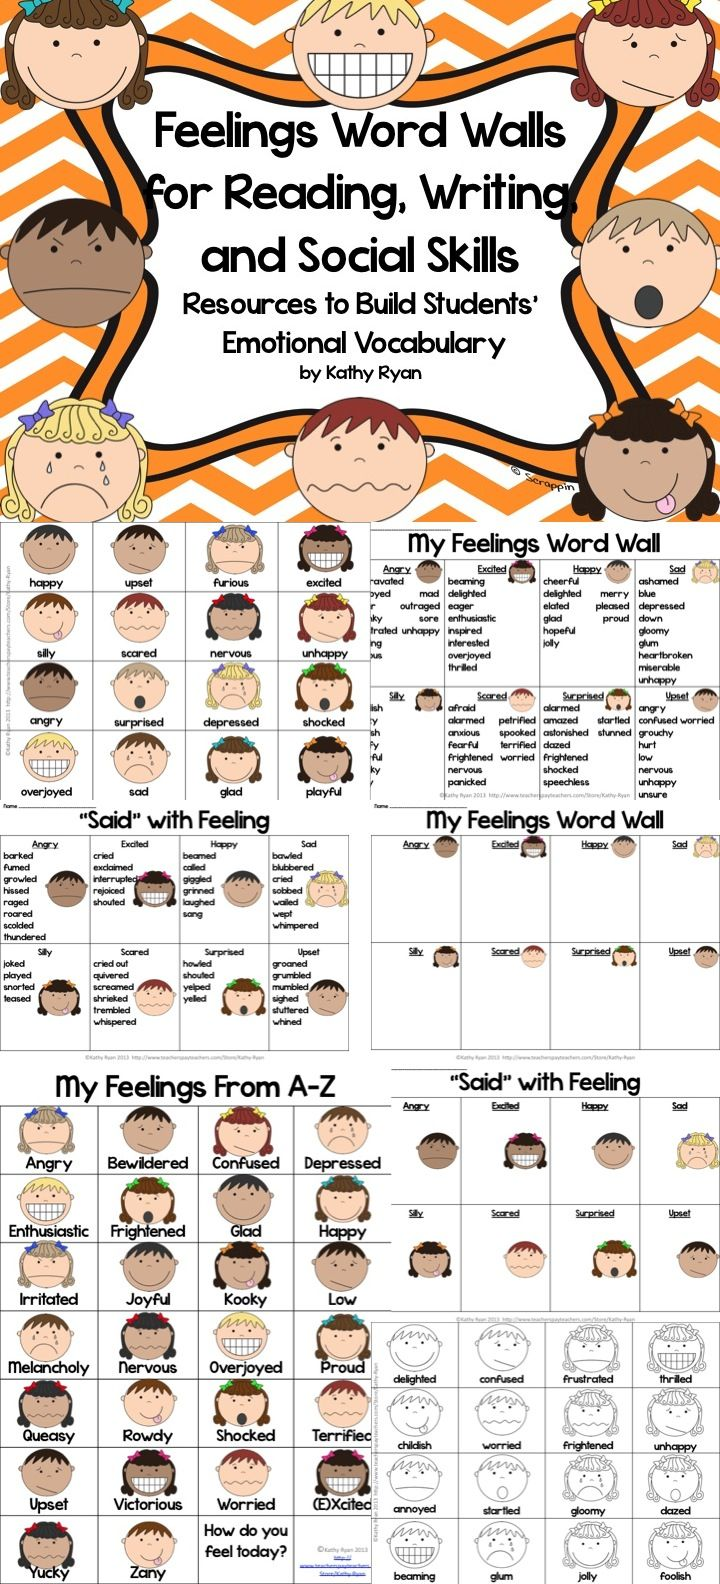 Word Walls With Feelings Theme Designed For Students Writing